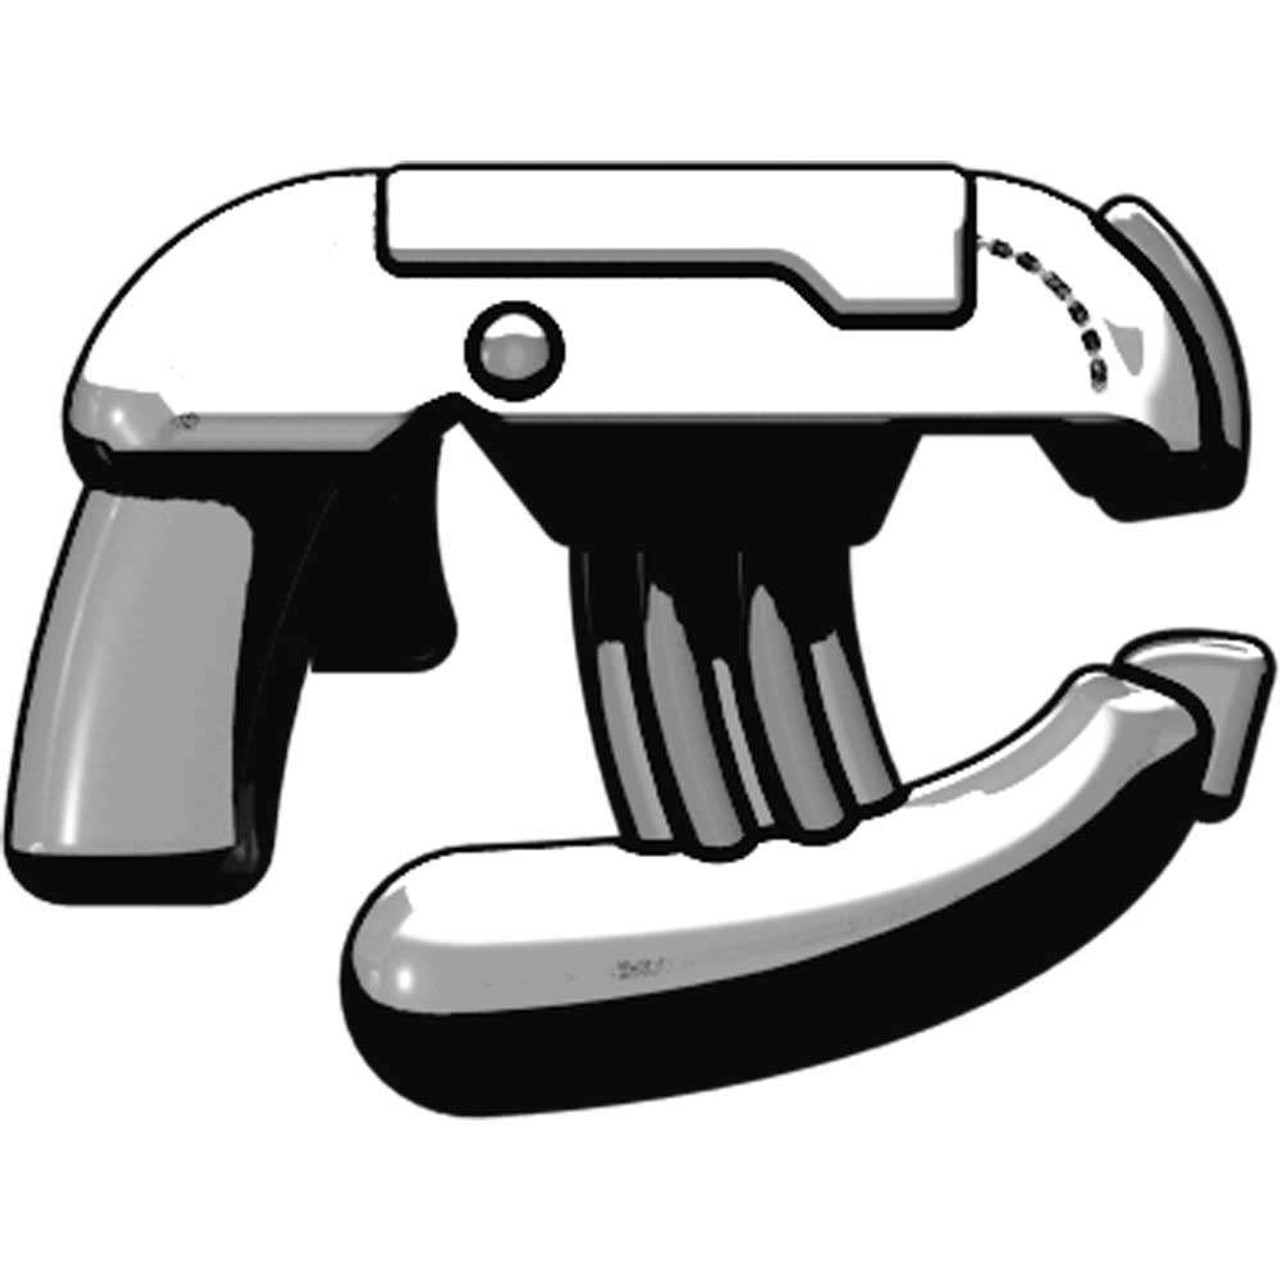 BrickArms Weapons Energy Pistol 2.5-Inch [Silver]